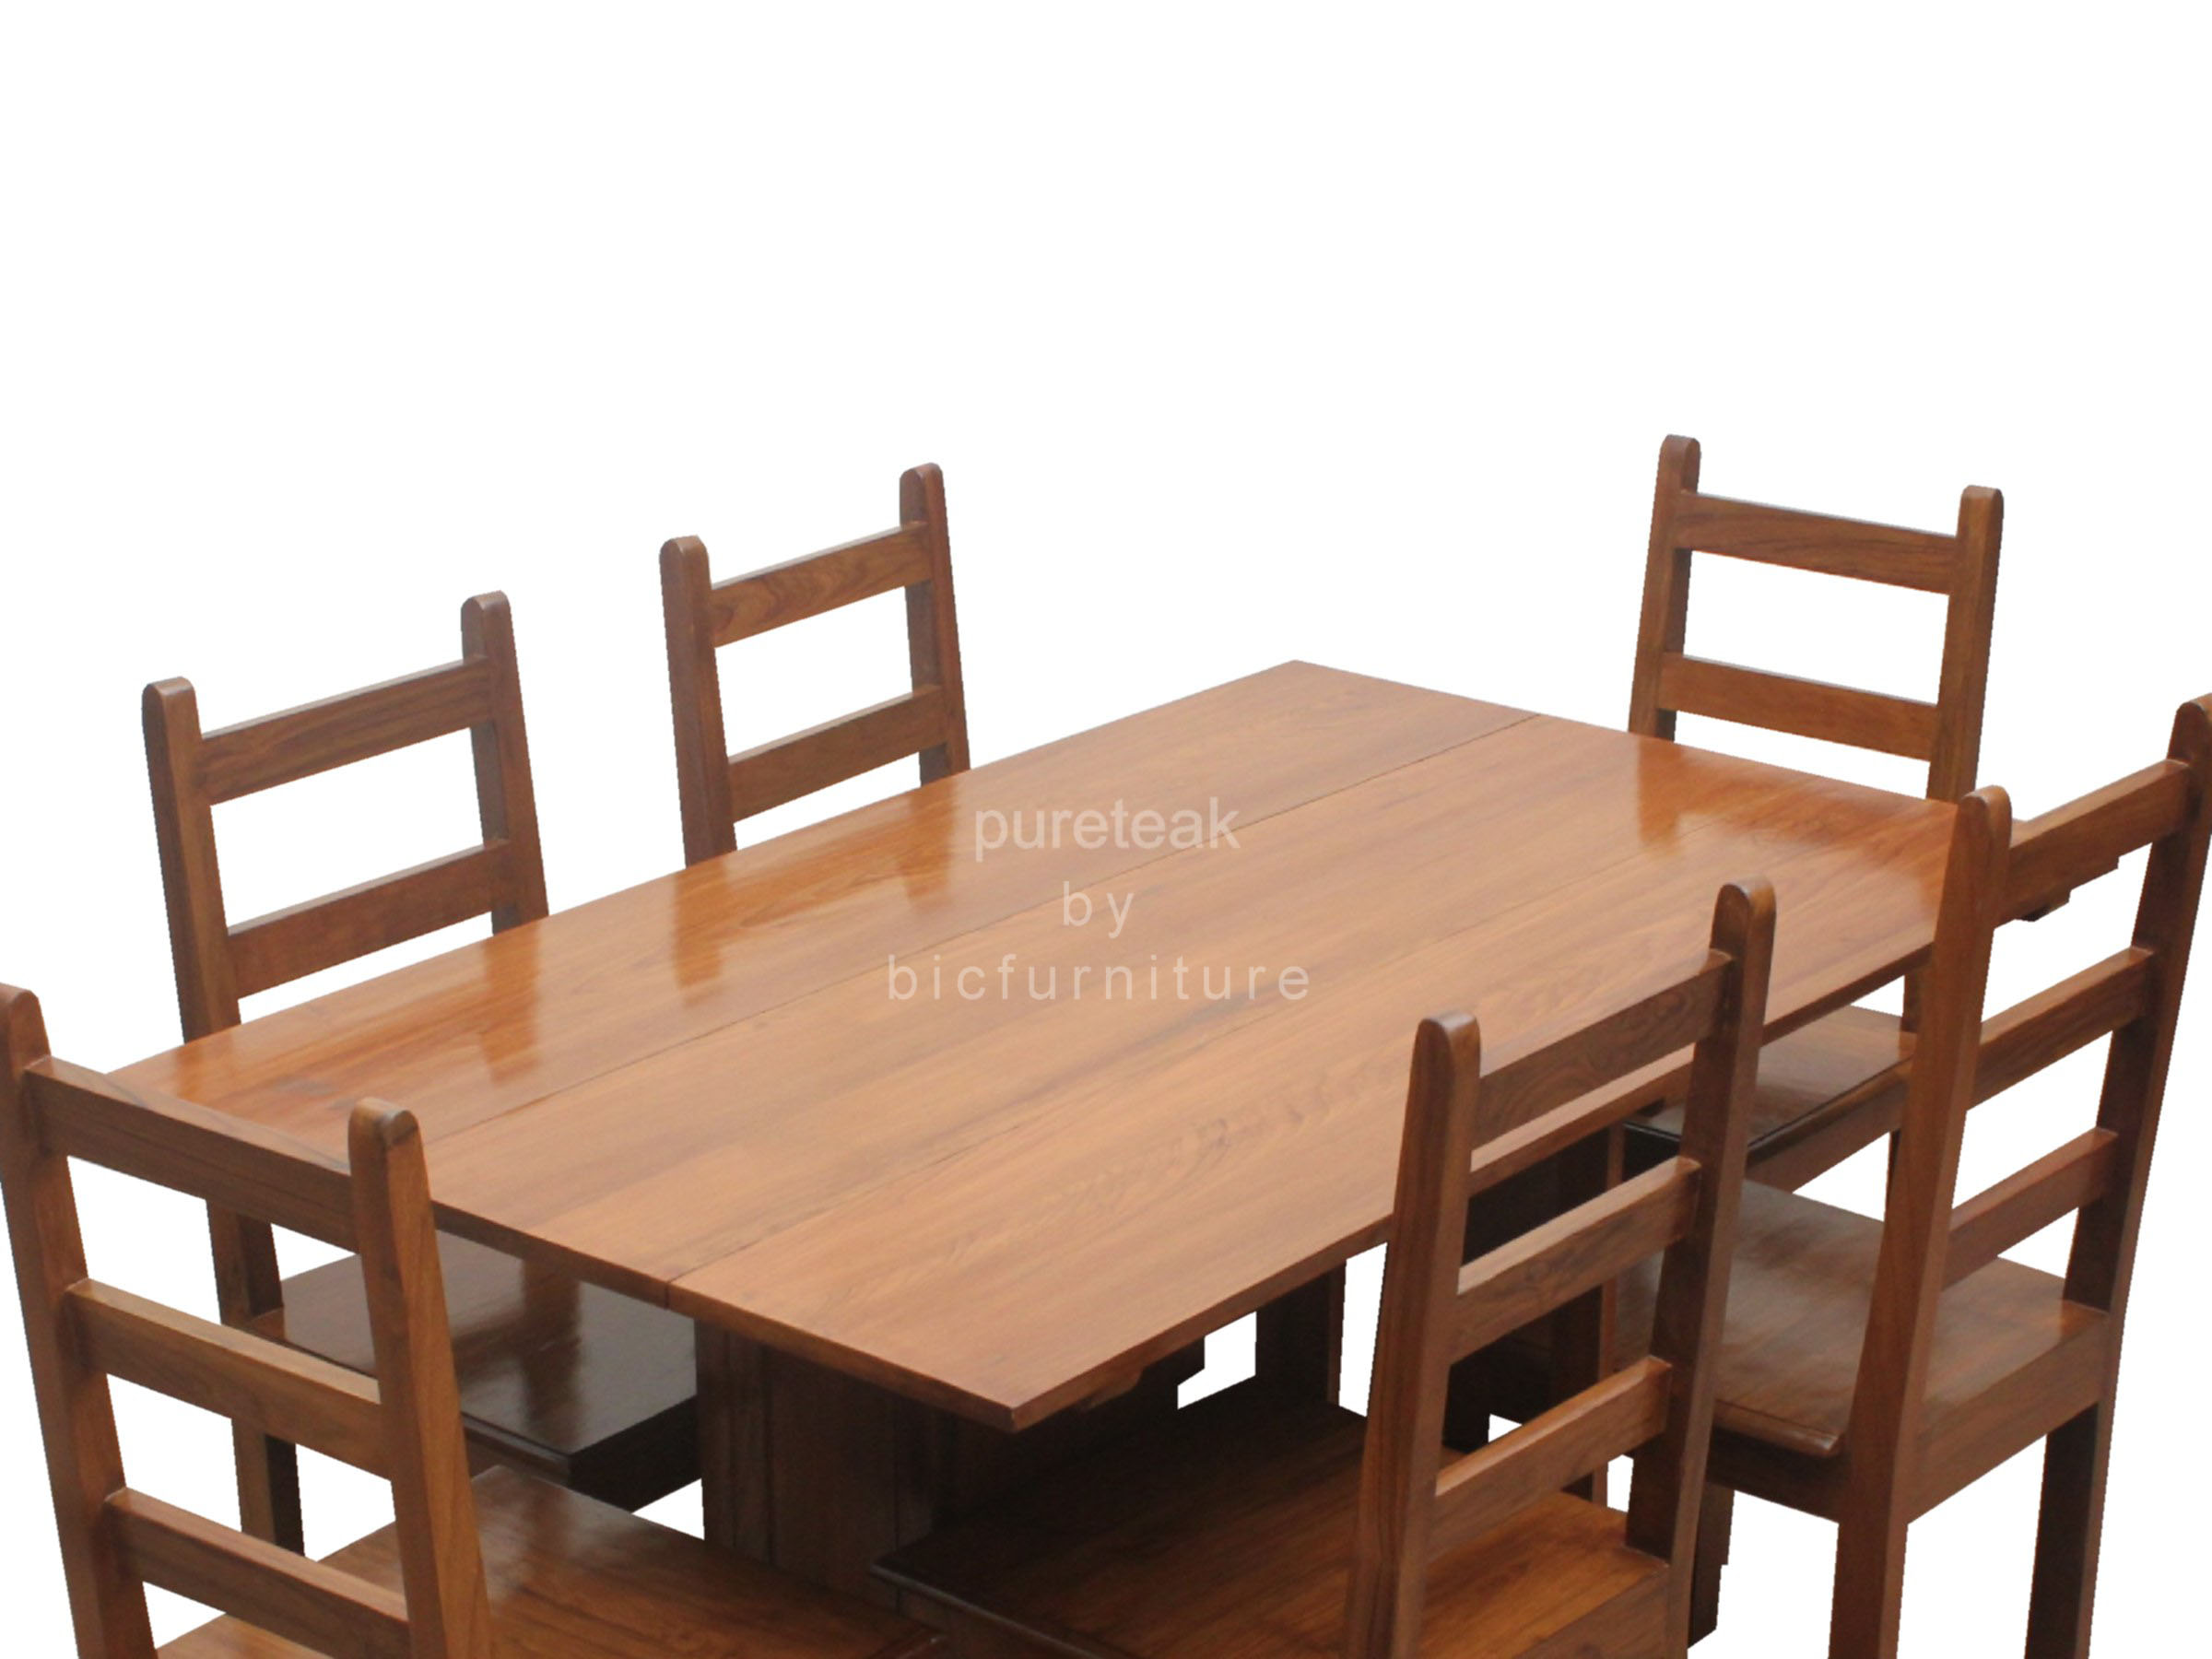 100 six seater dining table buy lotus dining 6s by online i